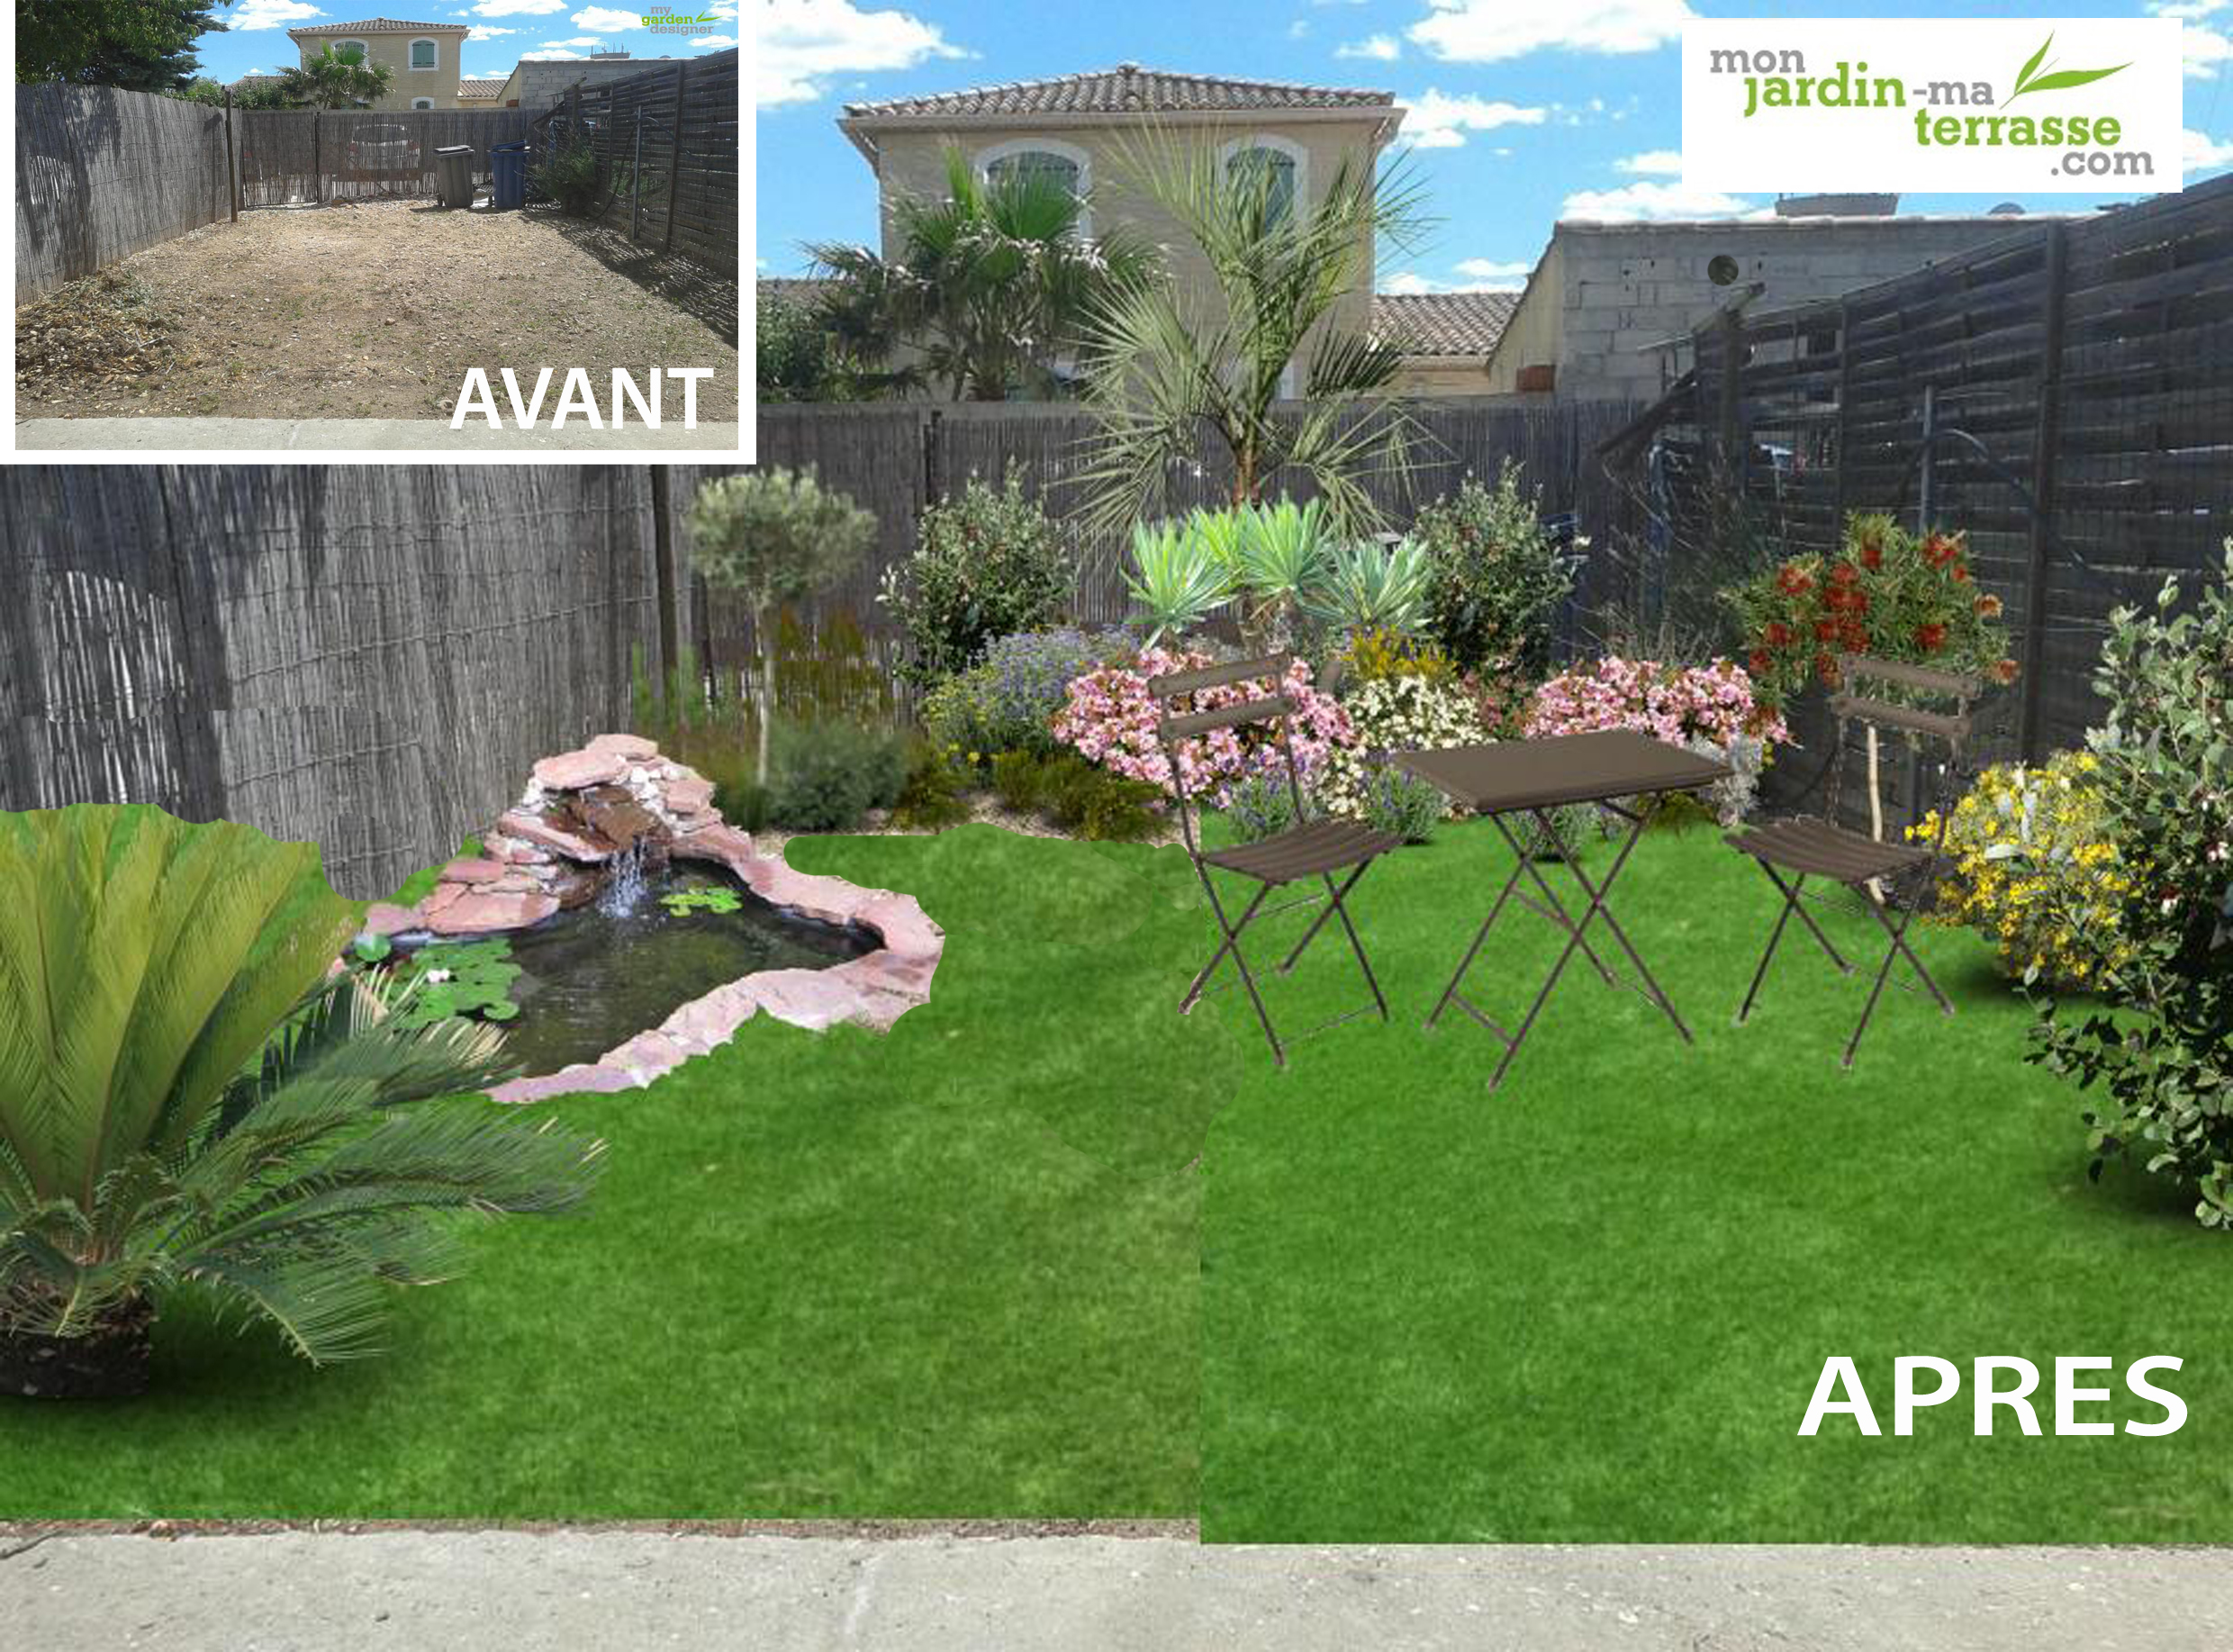 Id e d am nagement d un petit jardin monjardin for Amenagement terrasse de jardin